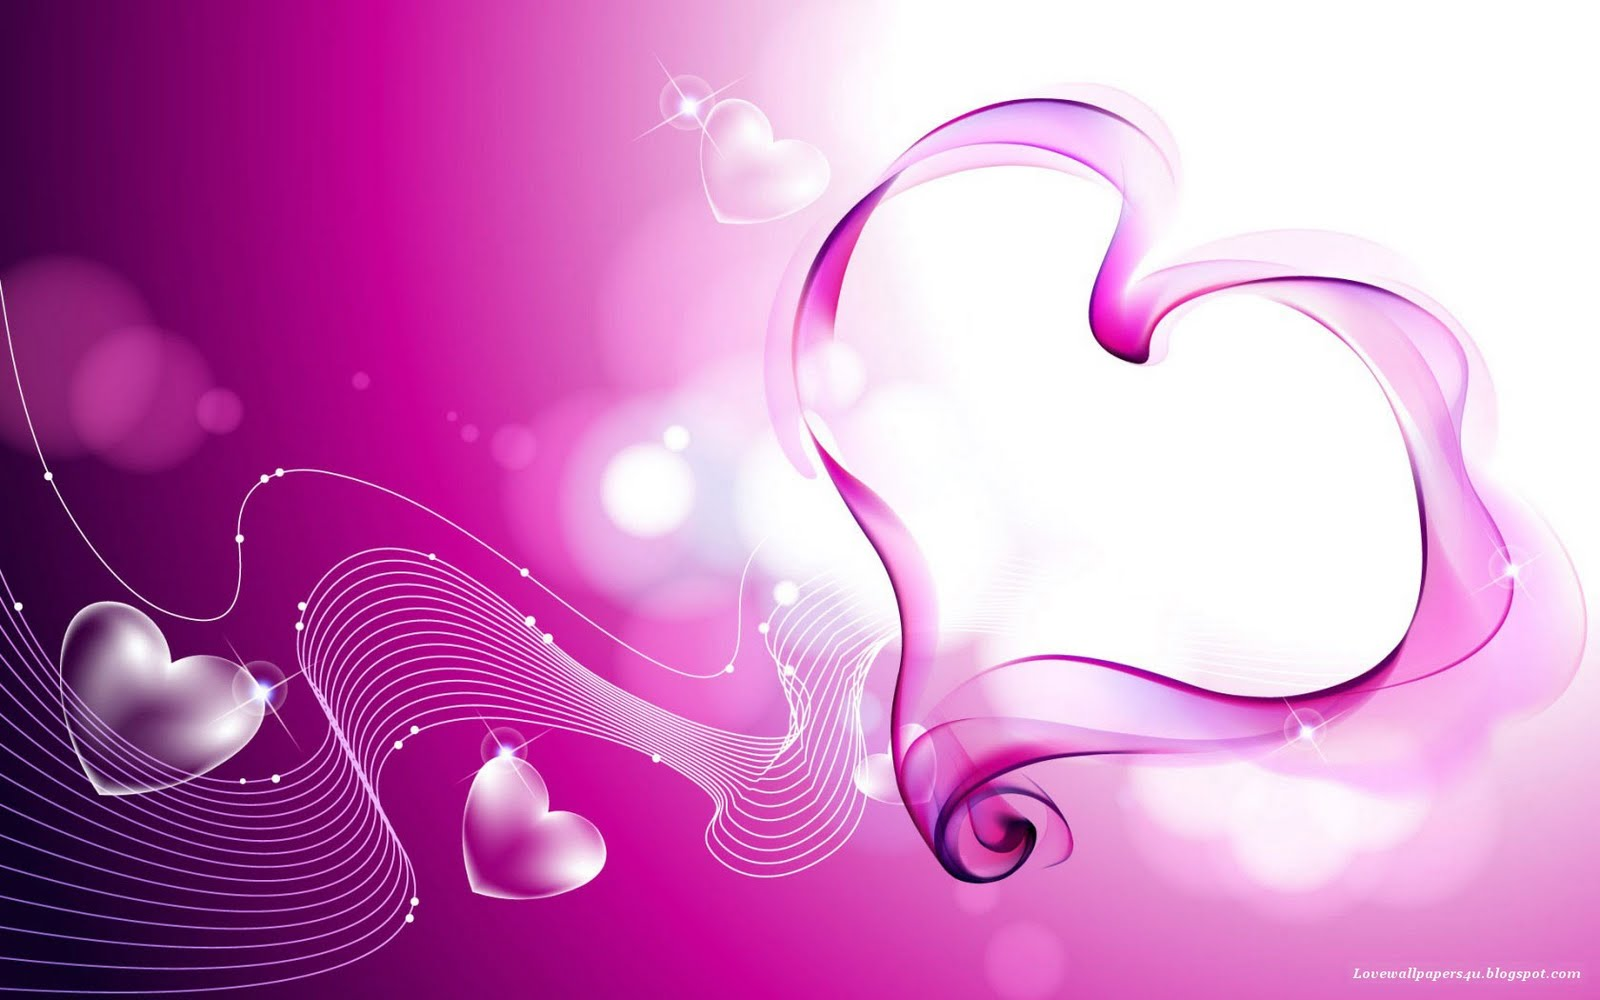 The best love wallpapers - romantic wallpapers